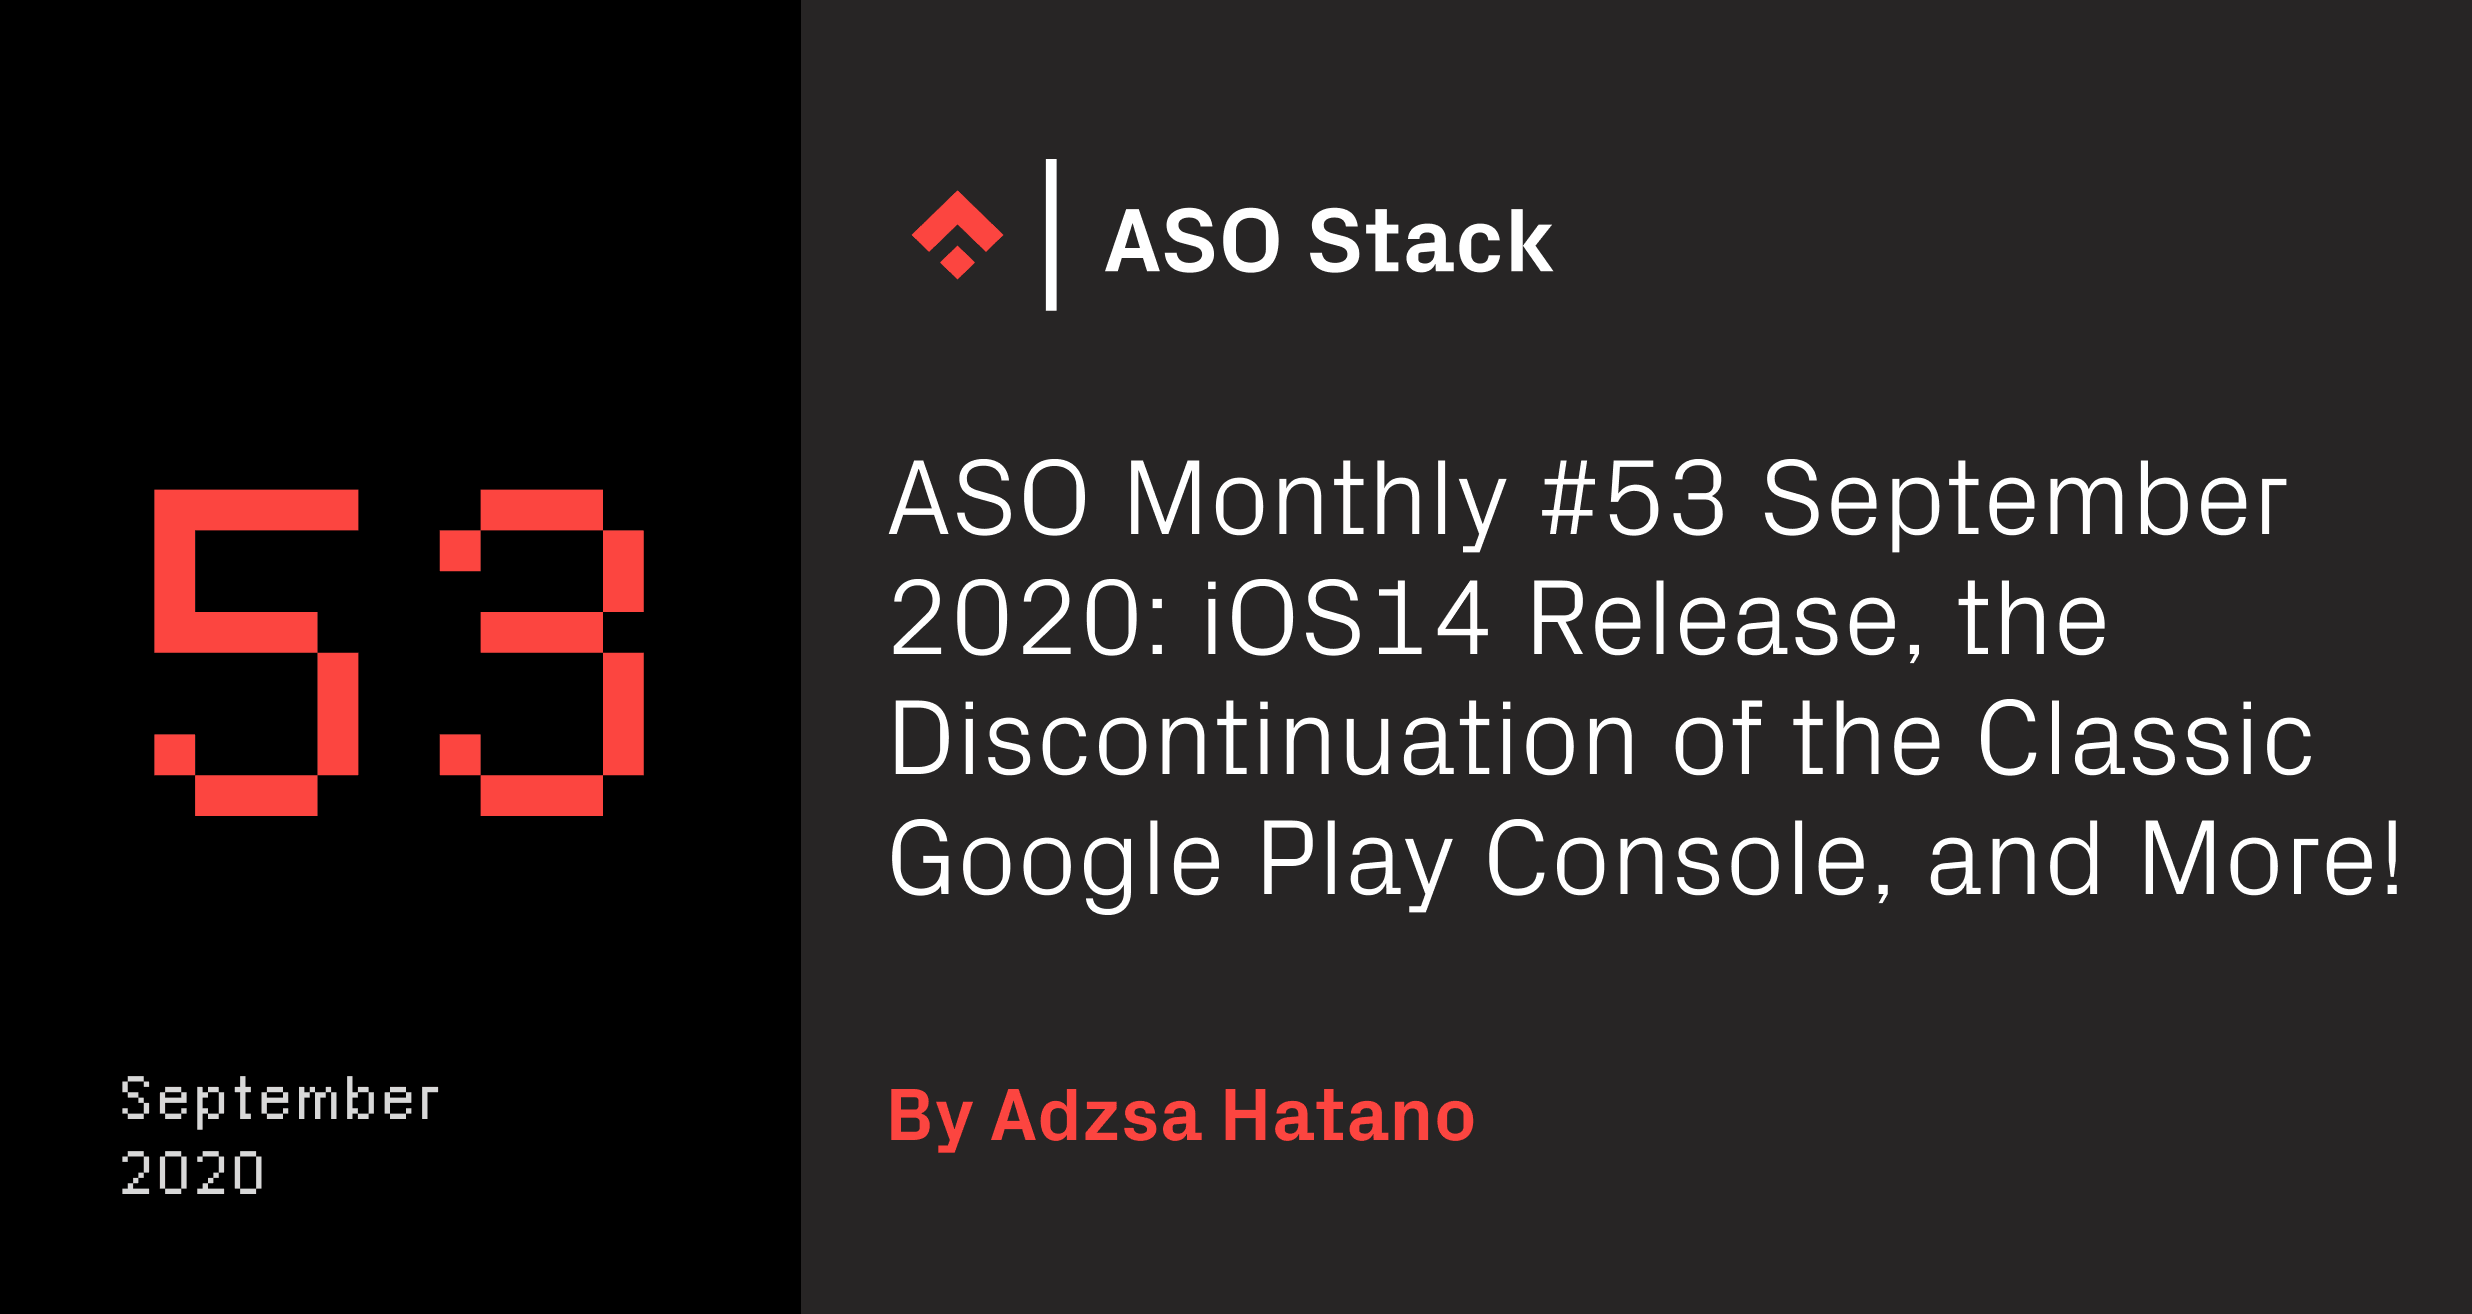 ASO Monthly 53